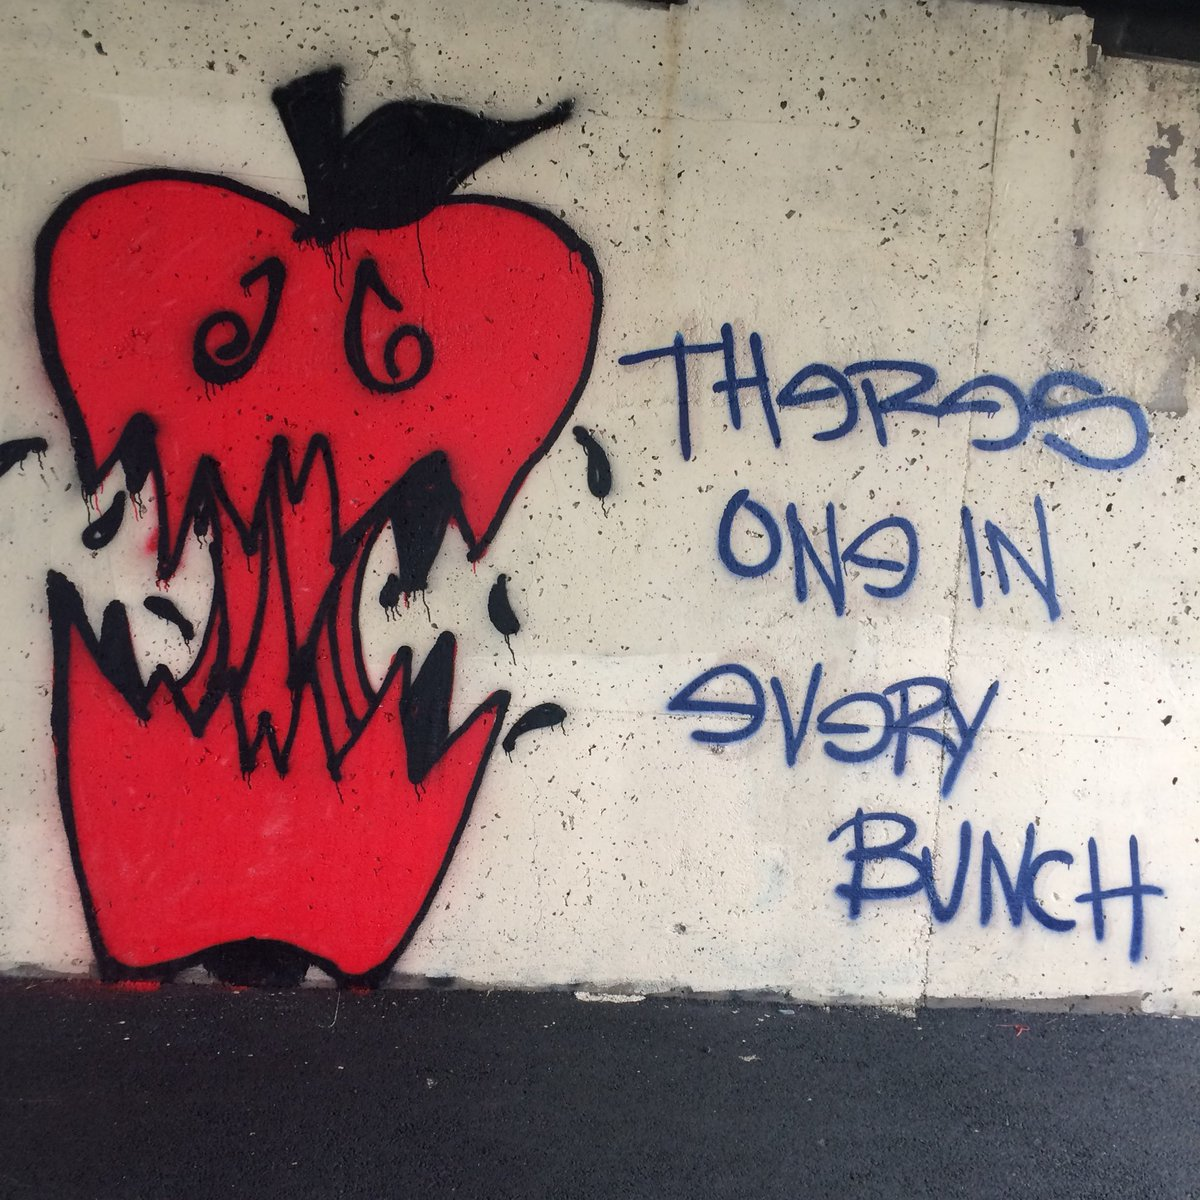 Walked a little farther than usual today and was rewarded with a graffiti art find! #art #graffiti #noonesgirl #badapple #walk #artist #apple